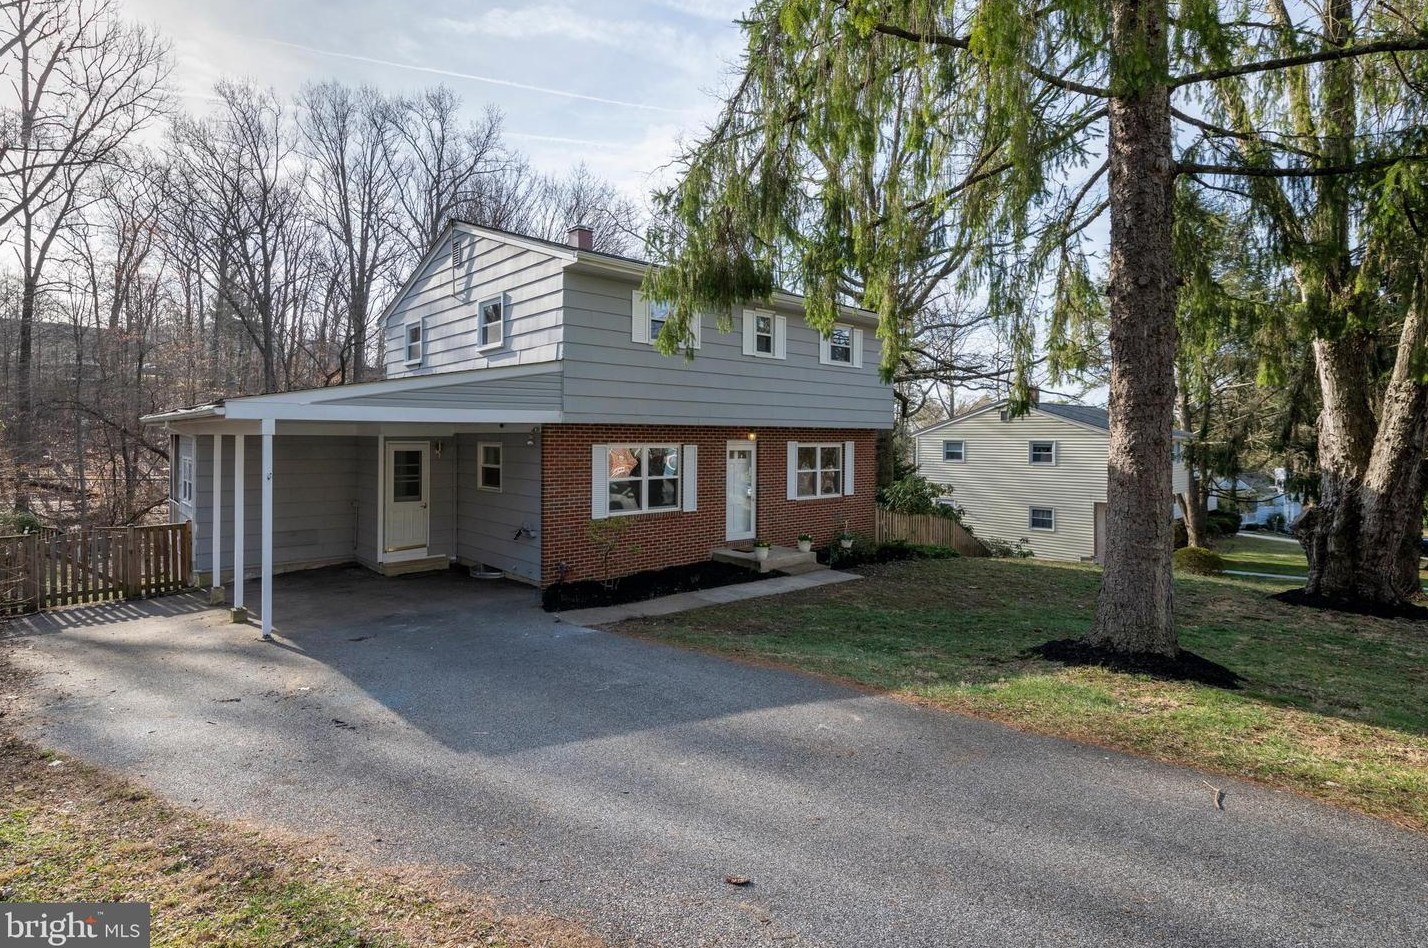 115 Bosley Ave, Hunt Valley, MD 21030